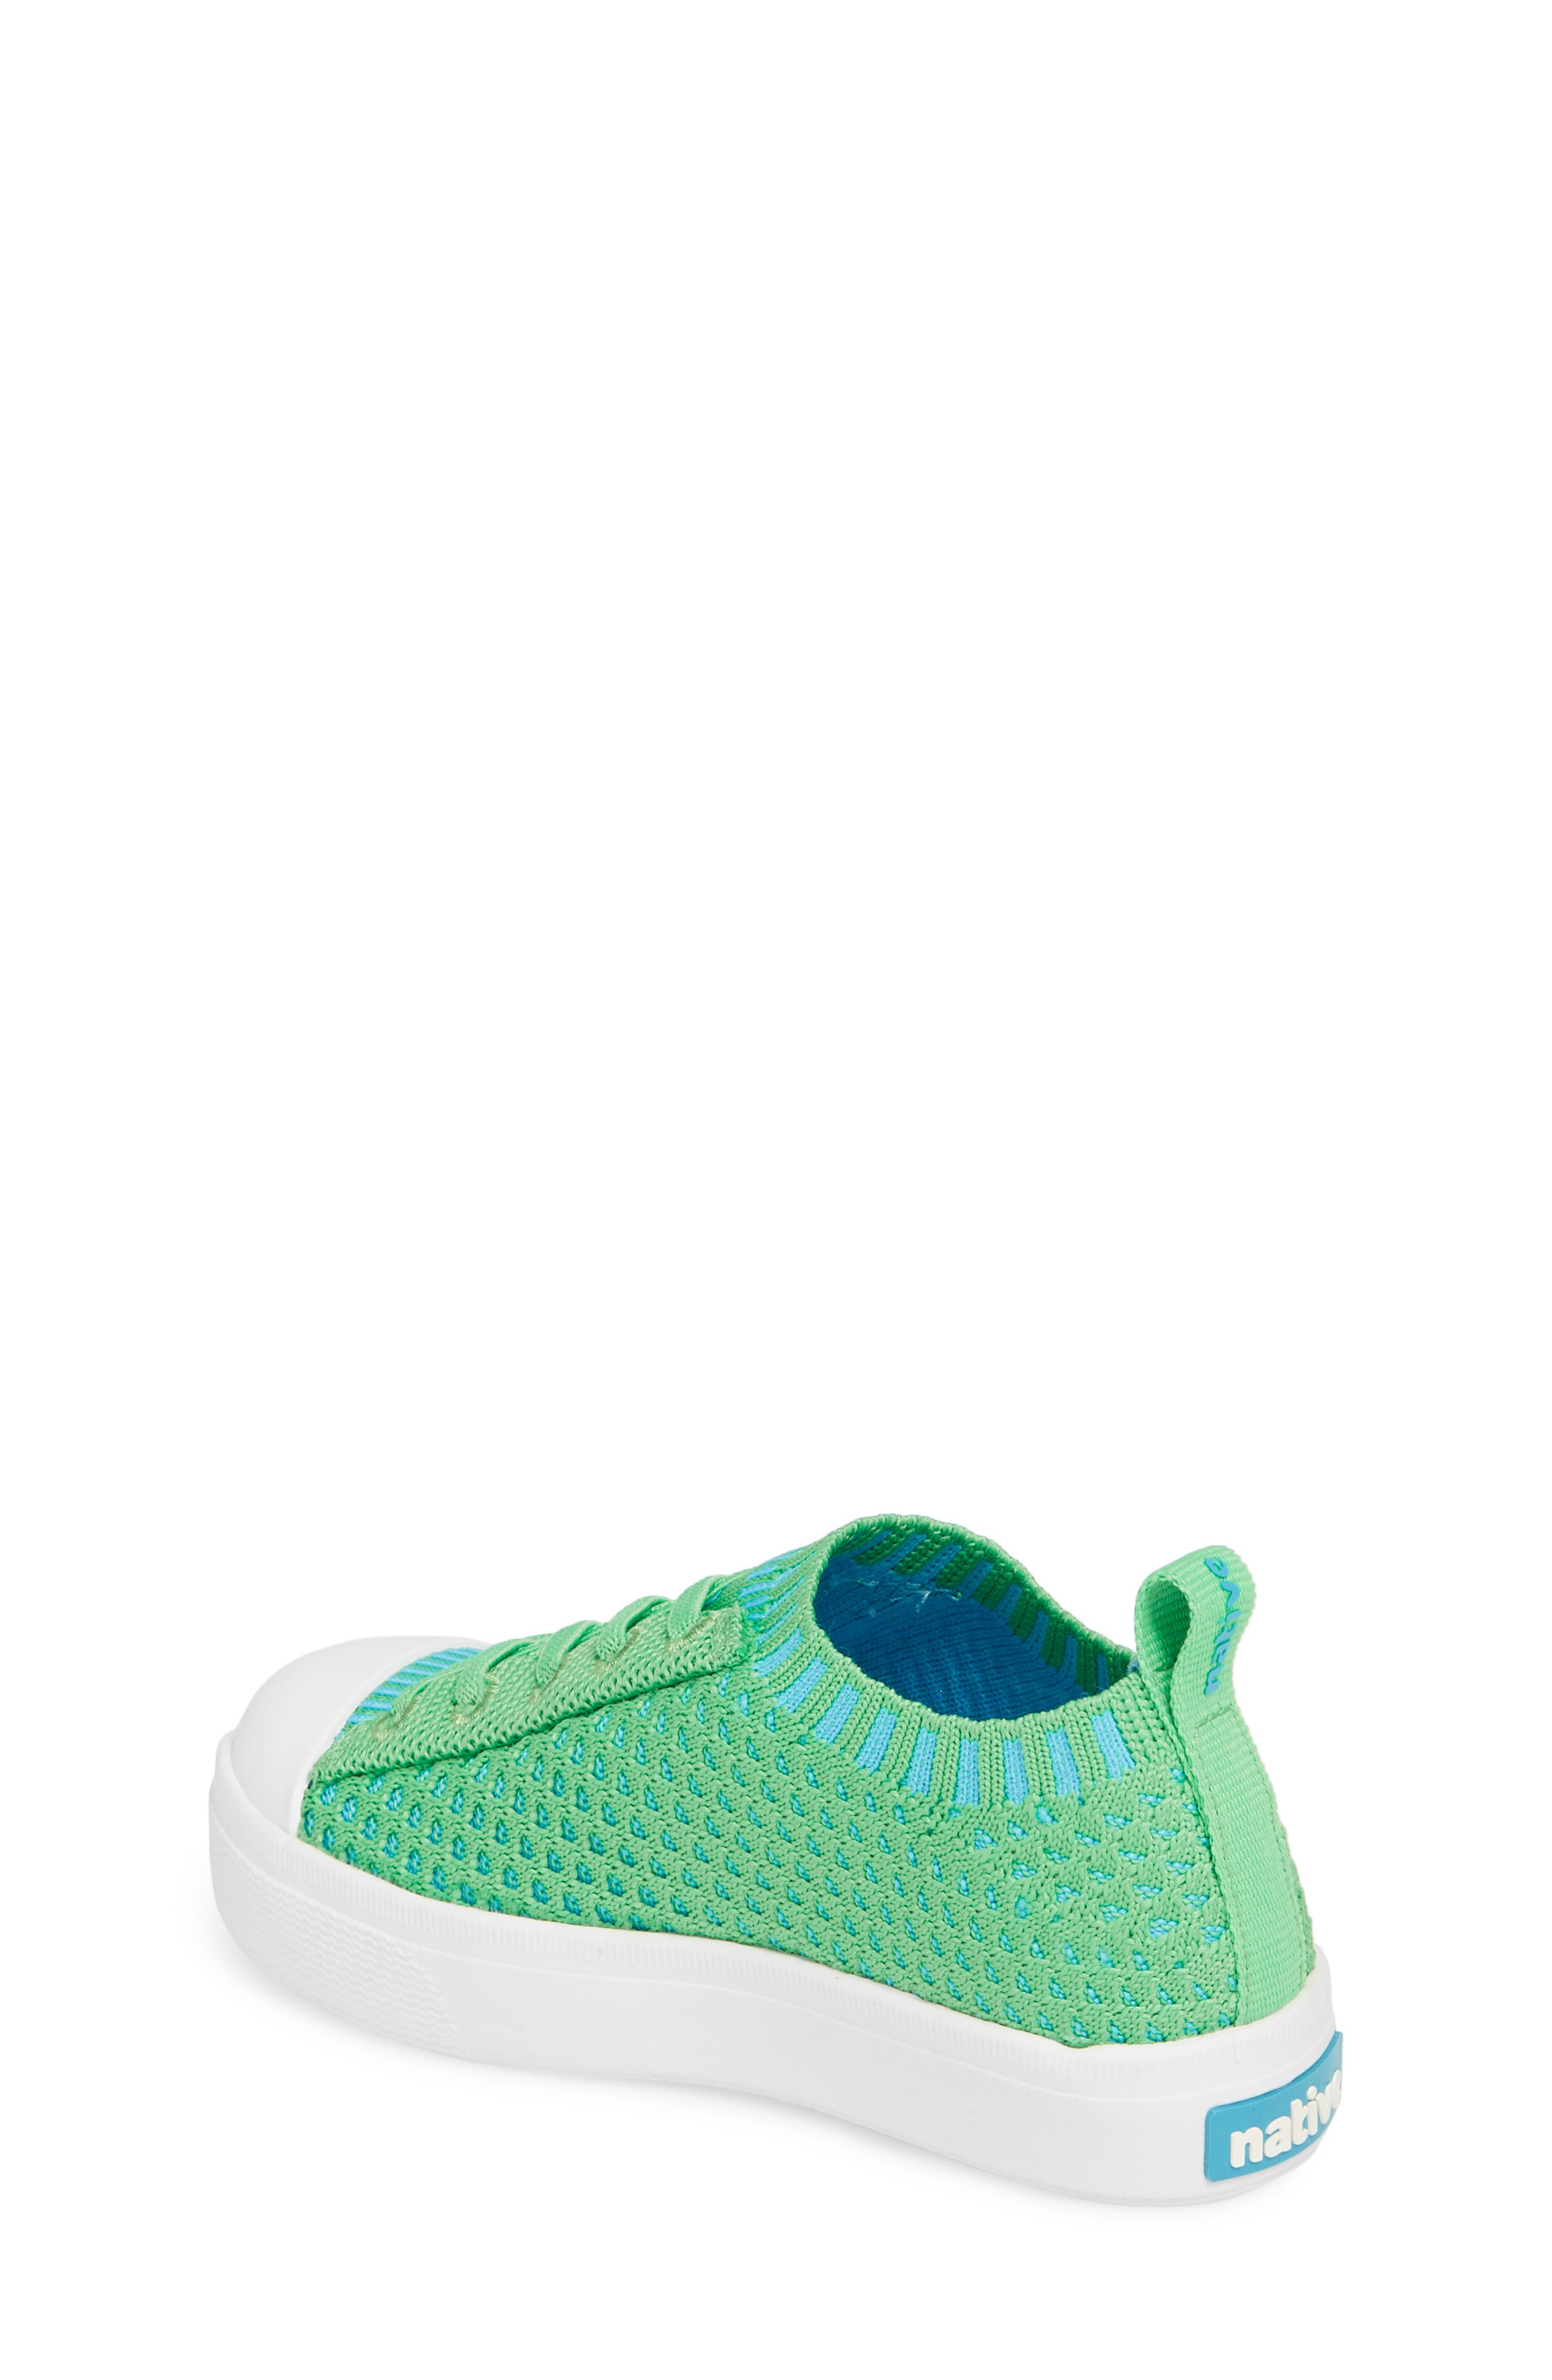 Native Jefferson 2.0 LiteKnit Sneaker,                             Alternate thumbnail 2, color,                             GRASS GREEN/ SHELL WHITE